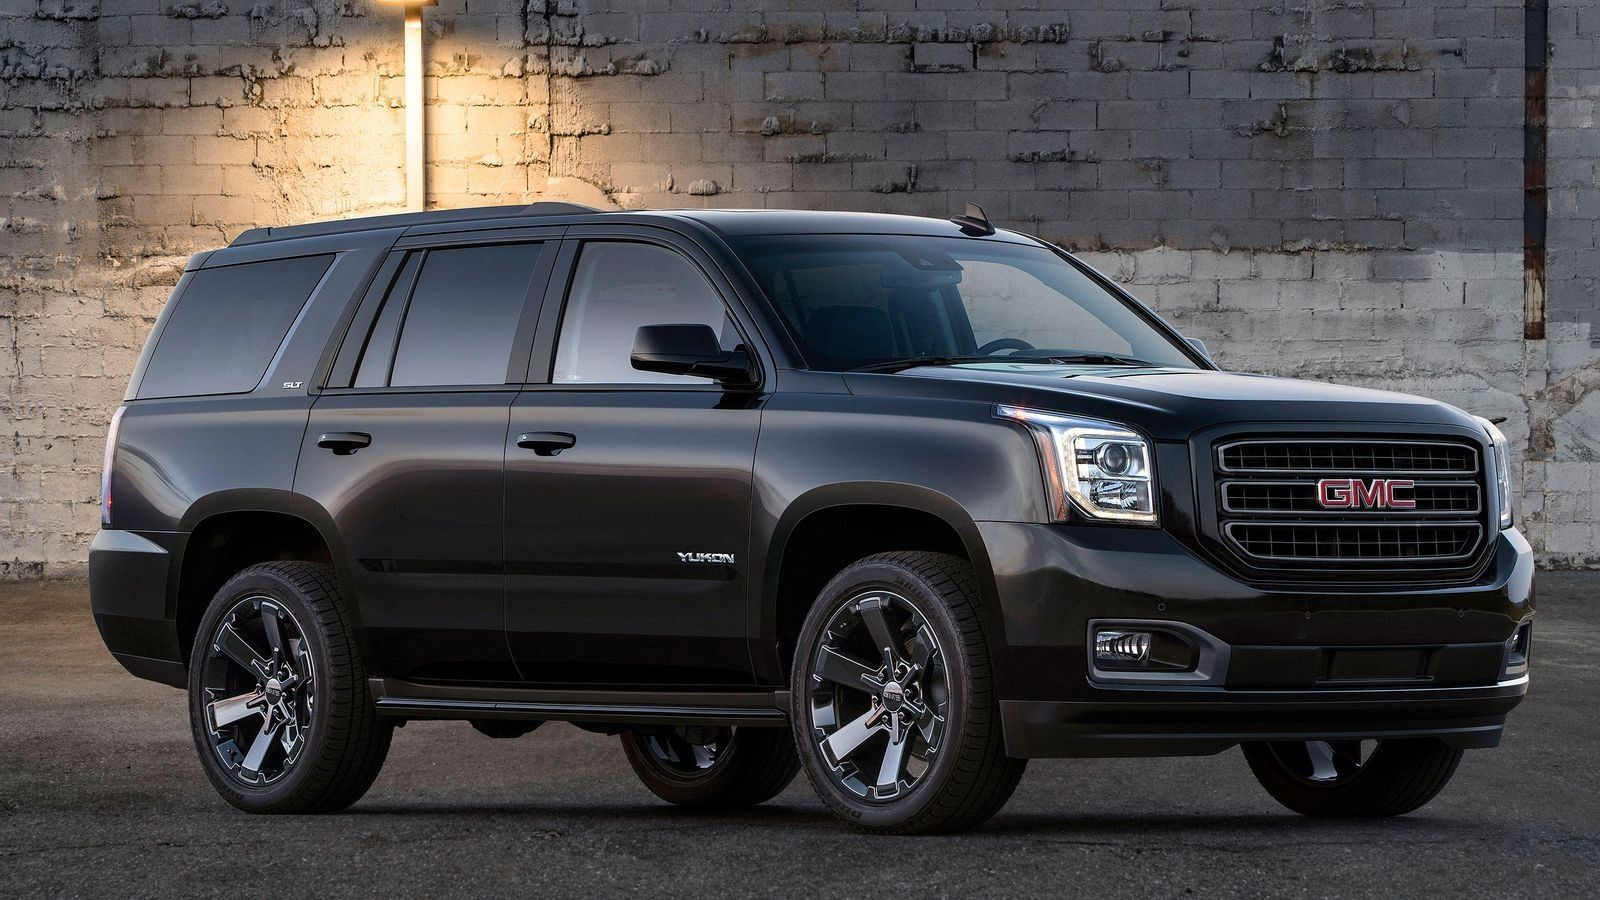 2019 Gmc Yukon Redesign Price And Review Gmc Yukon Gmc Yukon